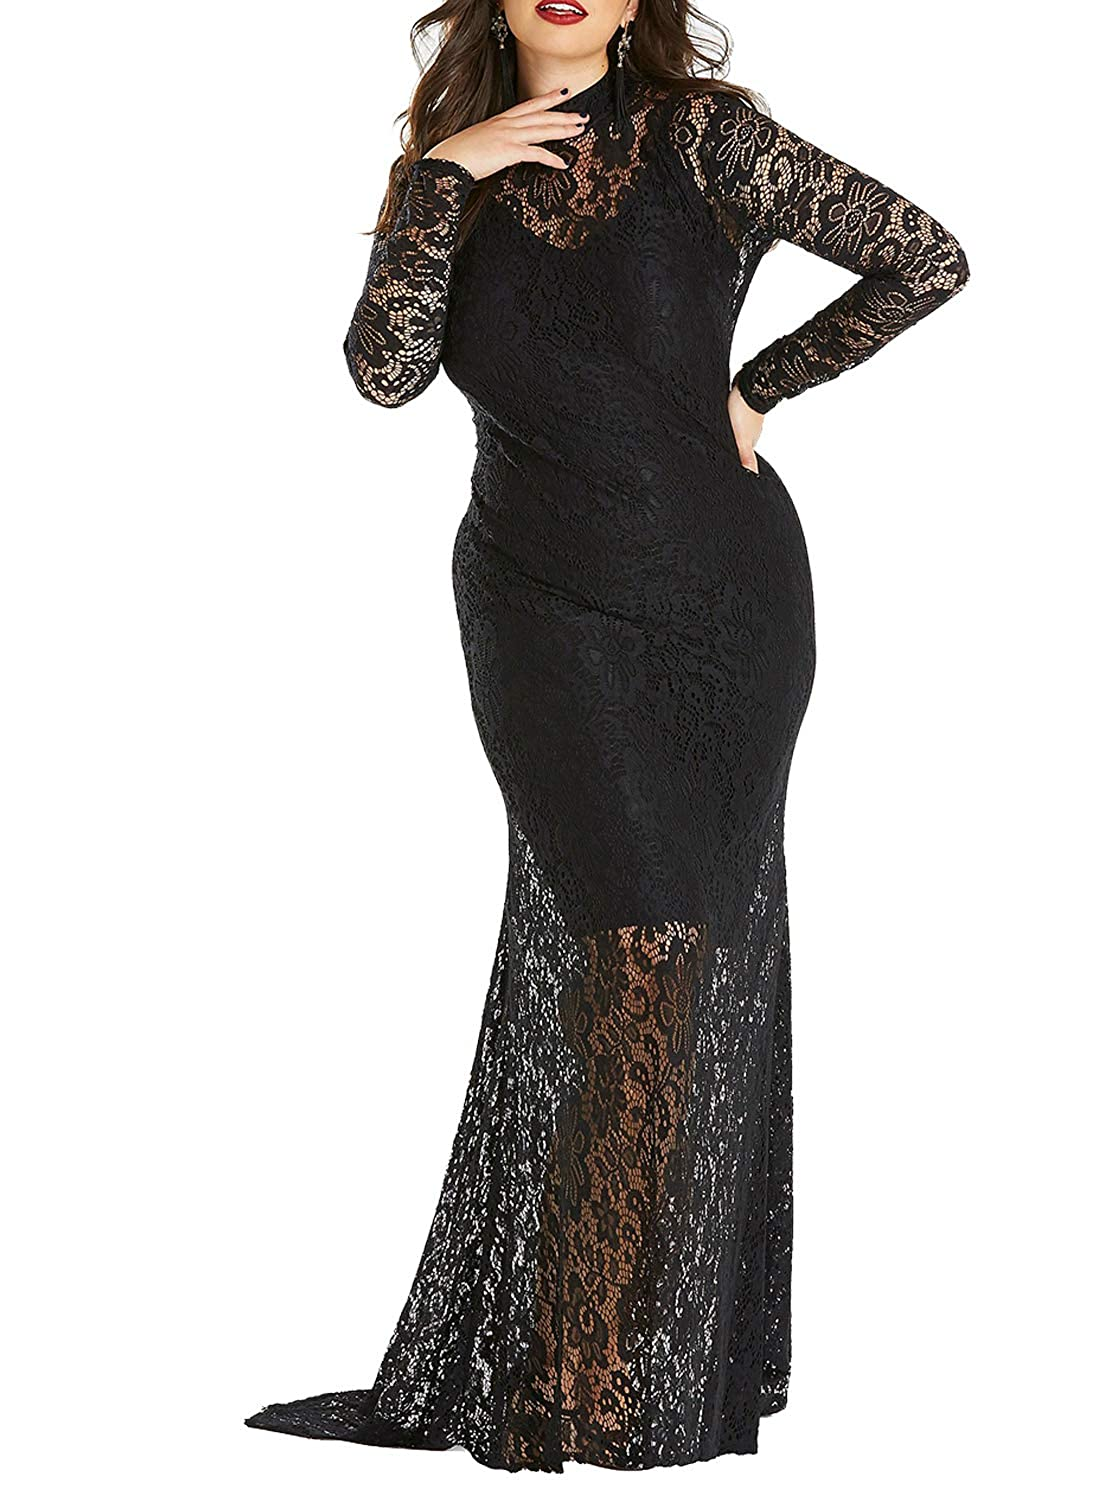 4fdb7ec45b96c Dokotoo Womens Plus Size High Neck Lace Fishtail Maxi Dress at Amazon Women's  Clothing store: